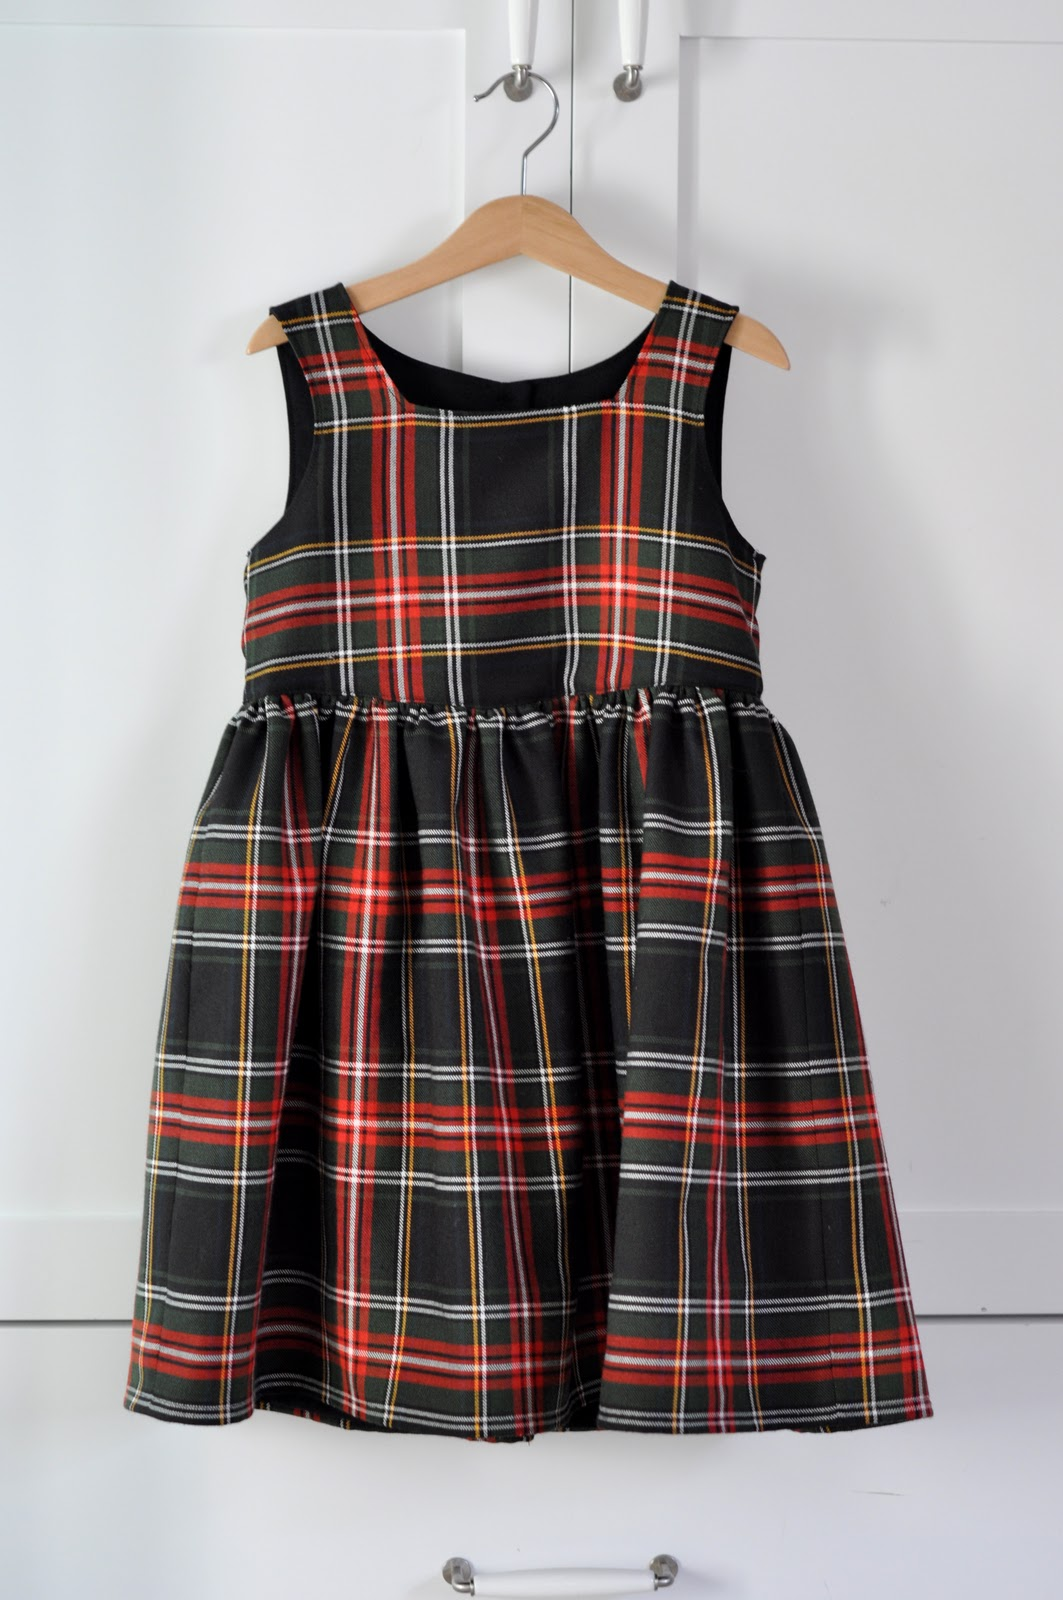 Aesthetic nest sewing plaid christmas dresses